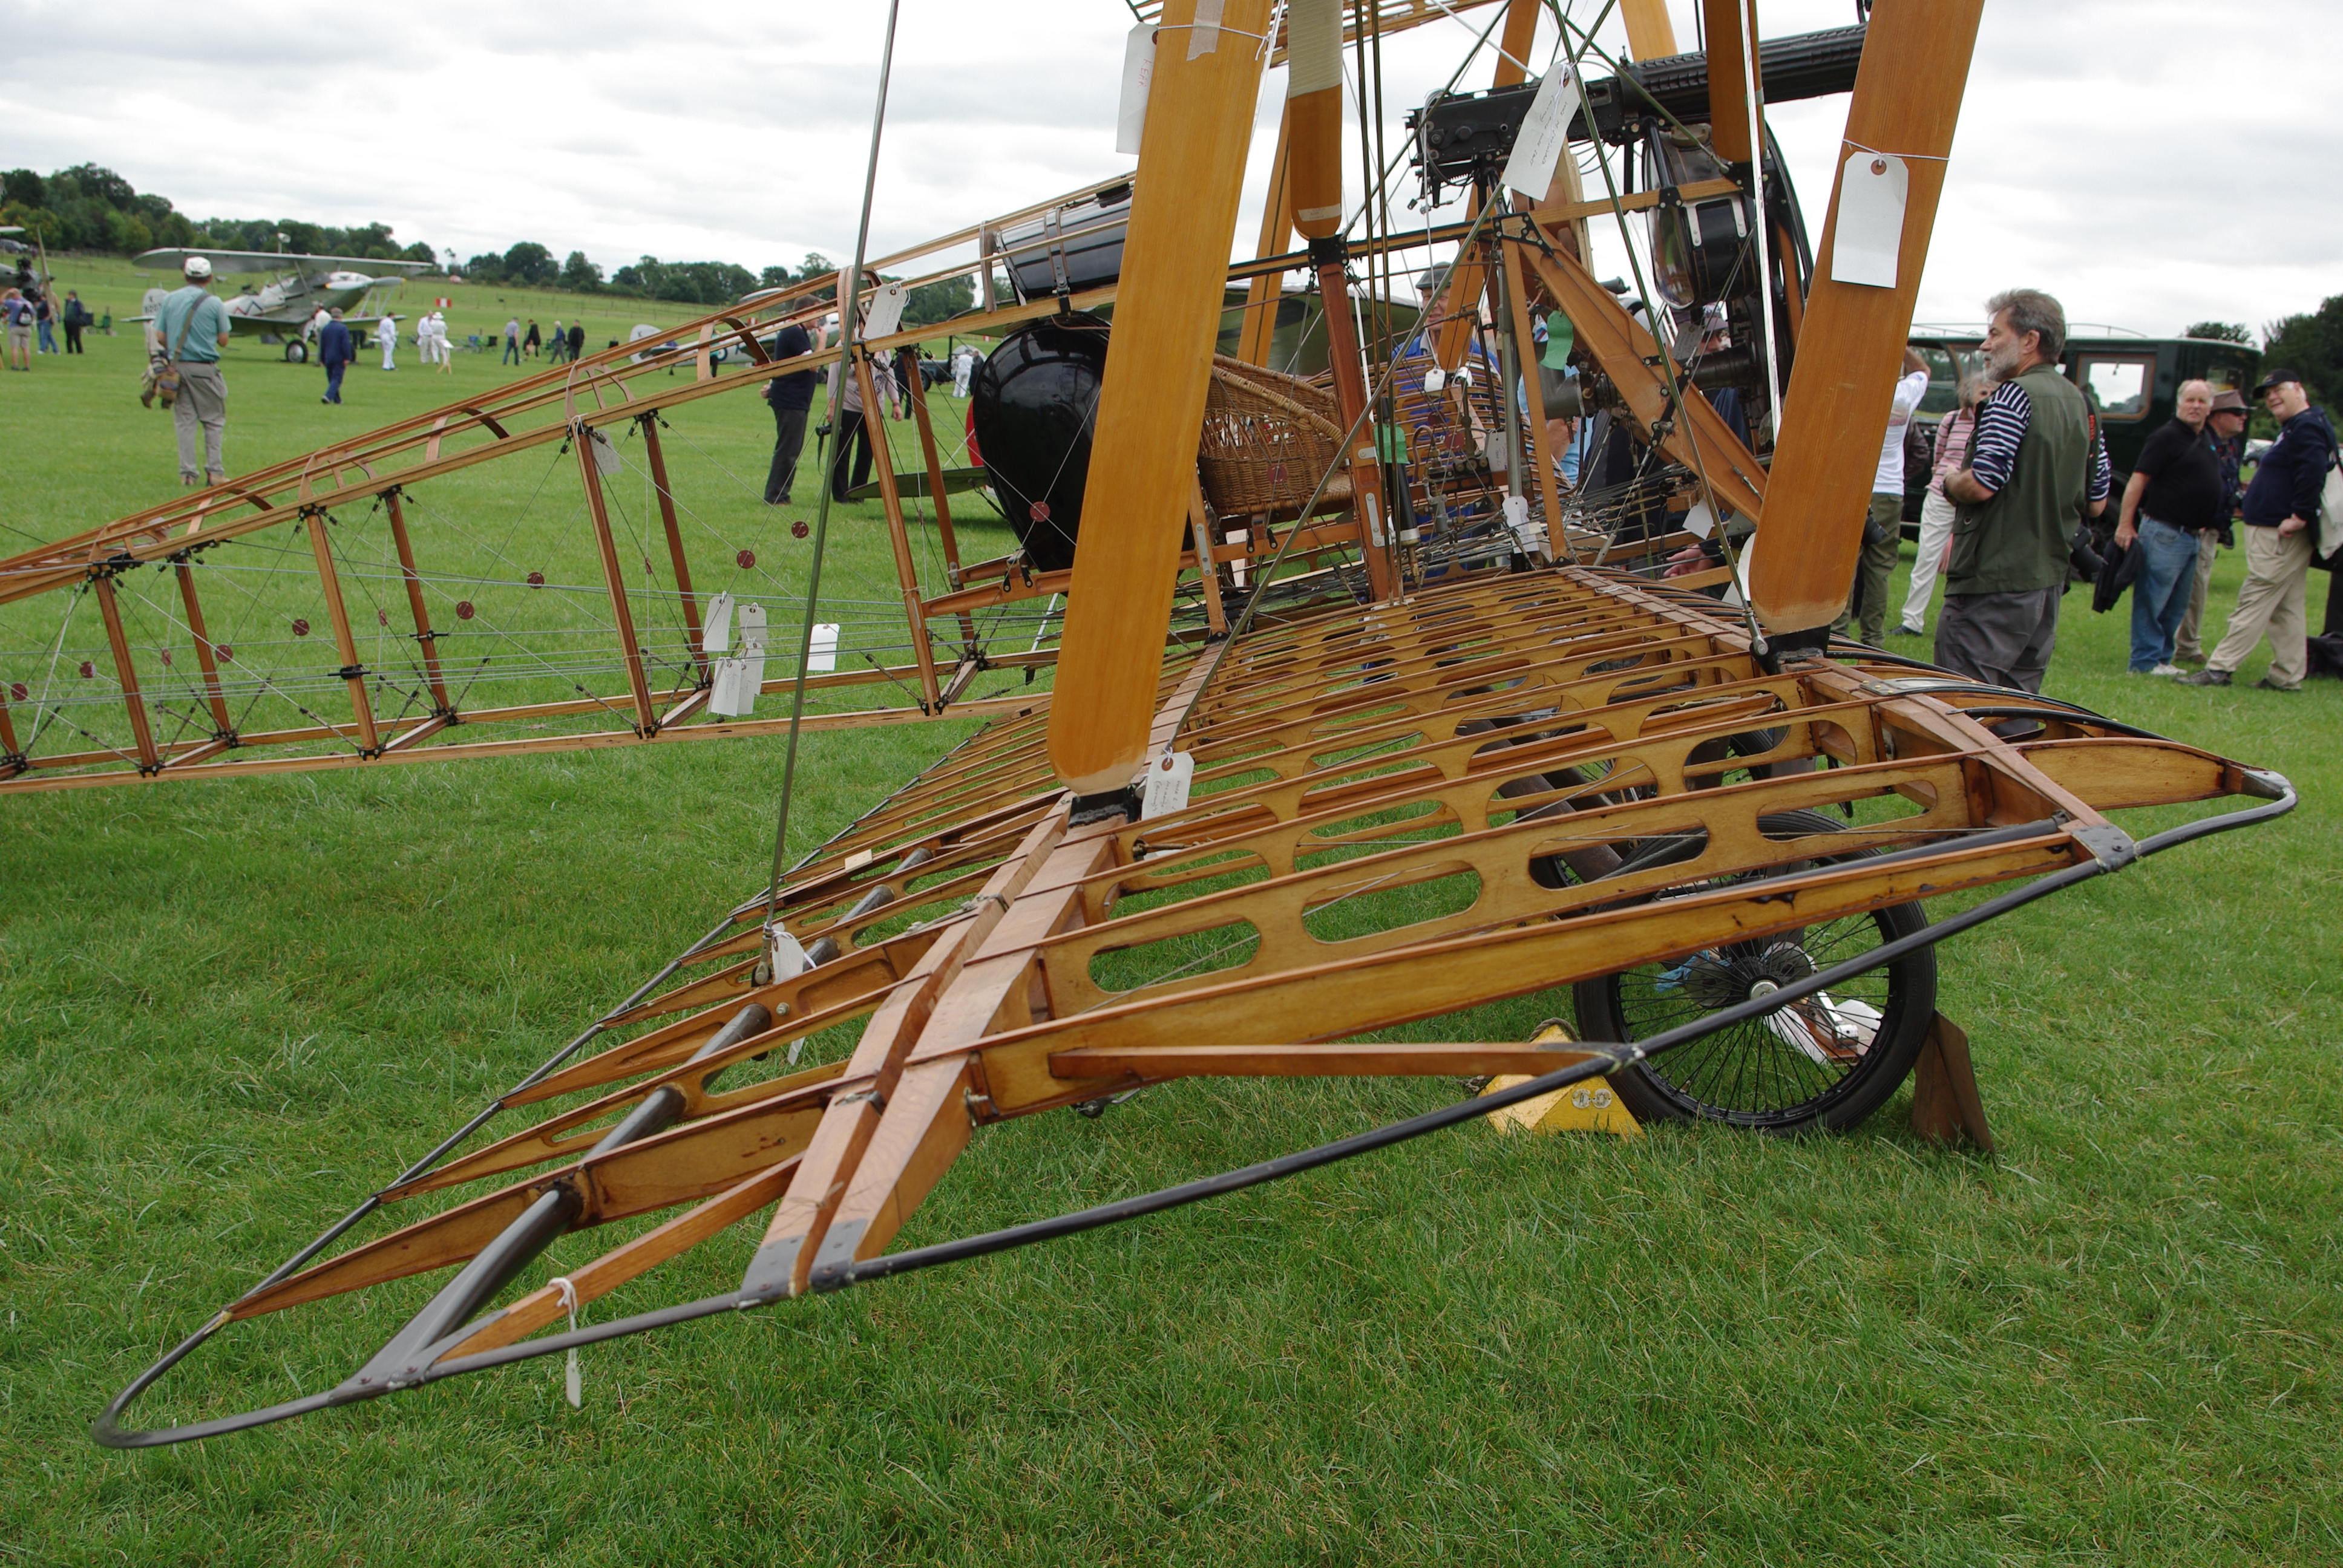 Sopwith Camel Replica - Exposed Structure